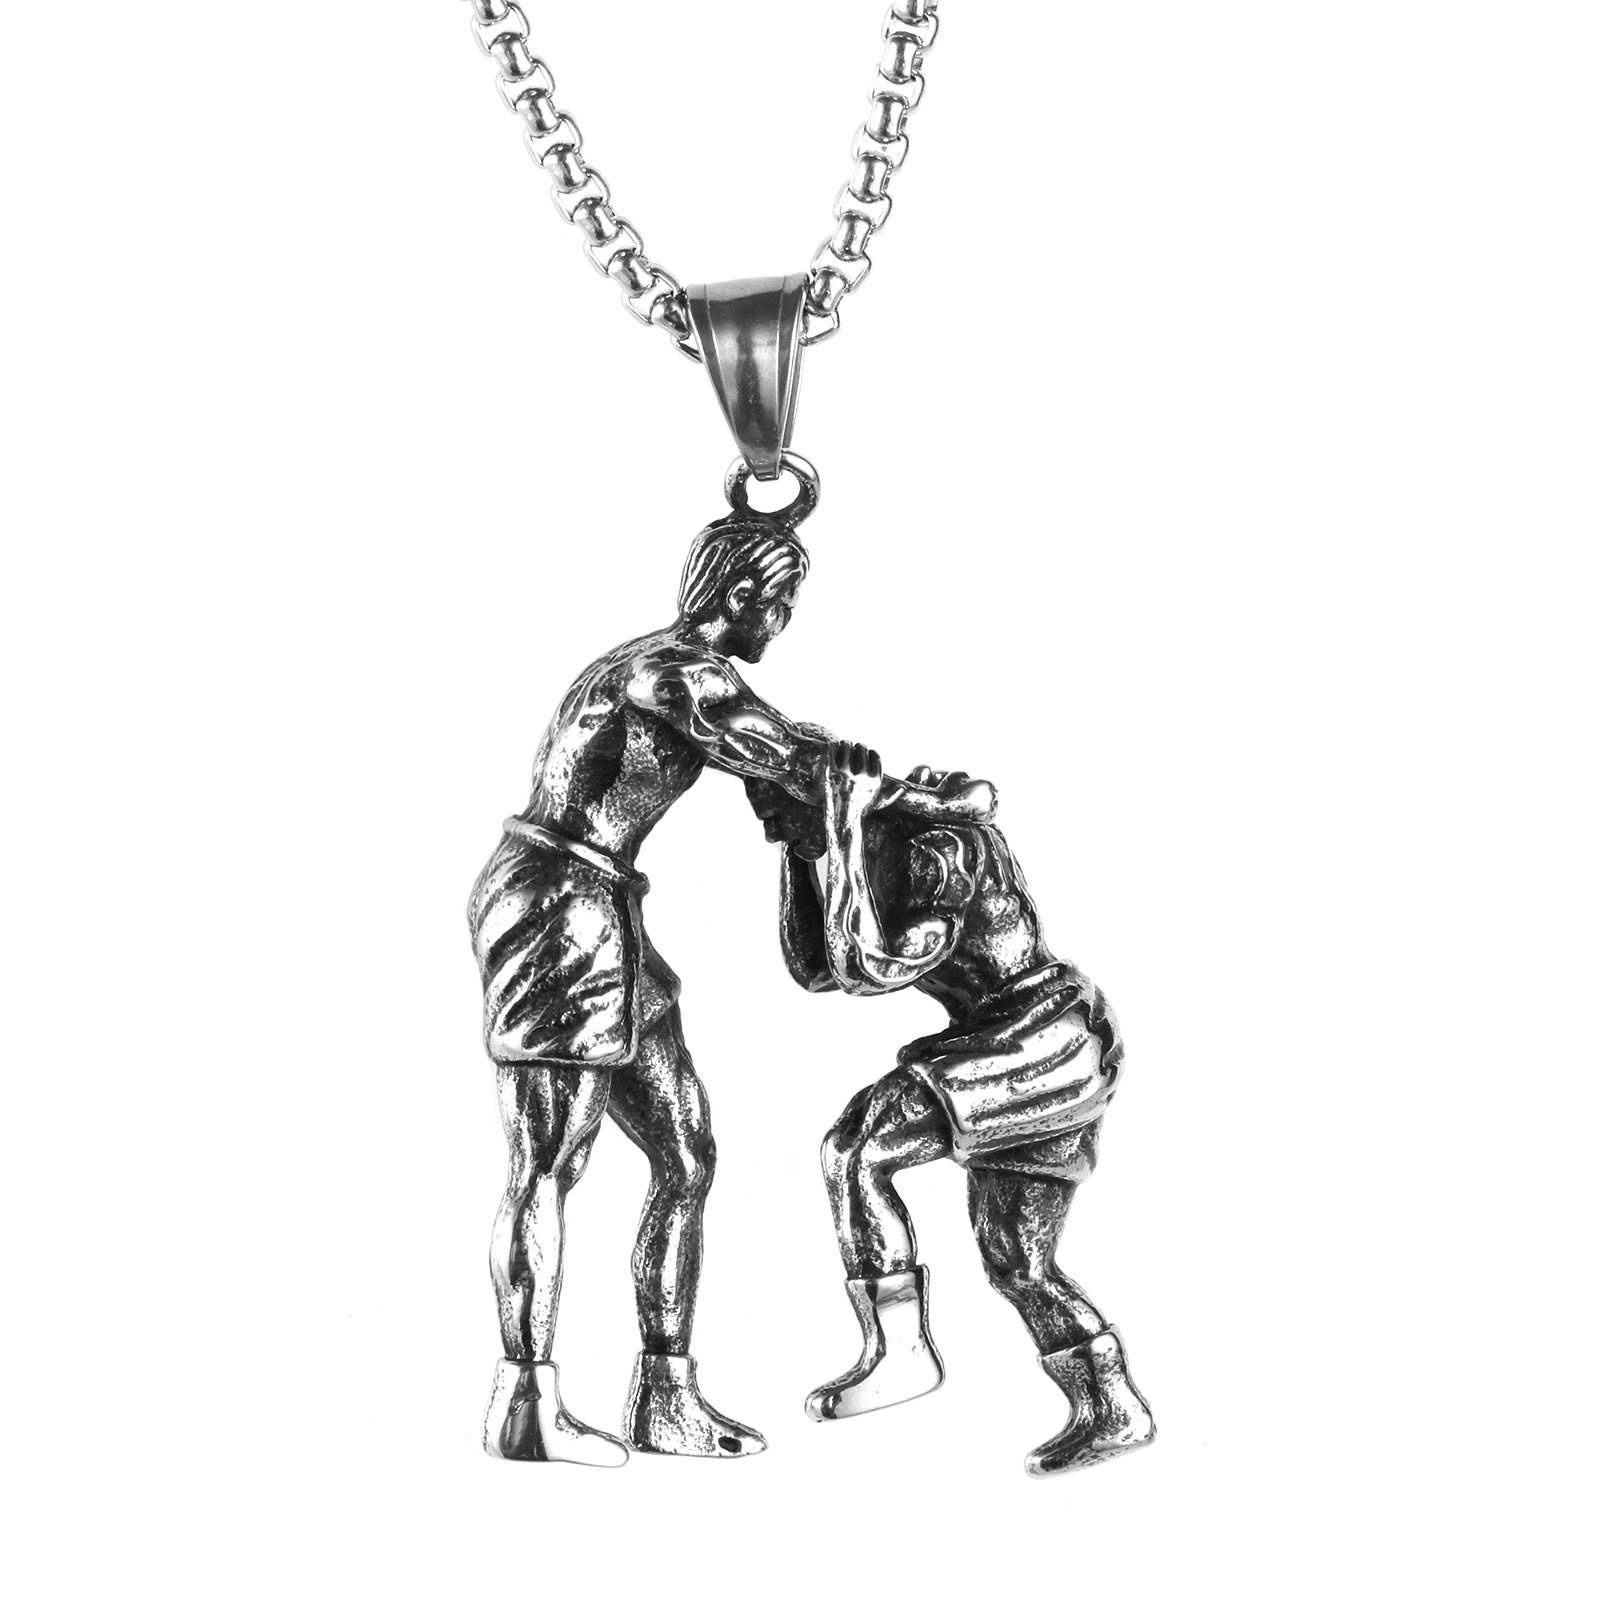 PAMTIER Men's Stainless Steel Sports Necklace Wrestling Pendant With Chain